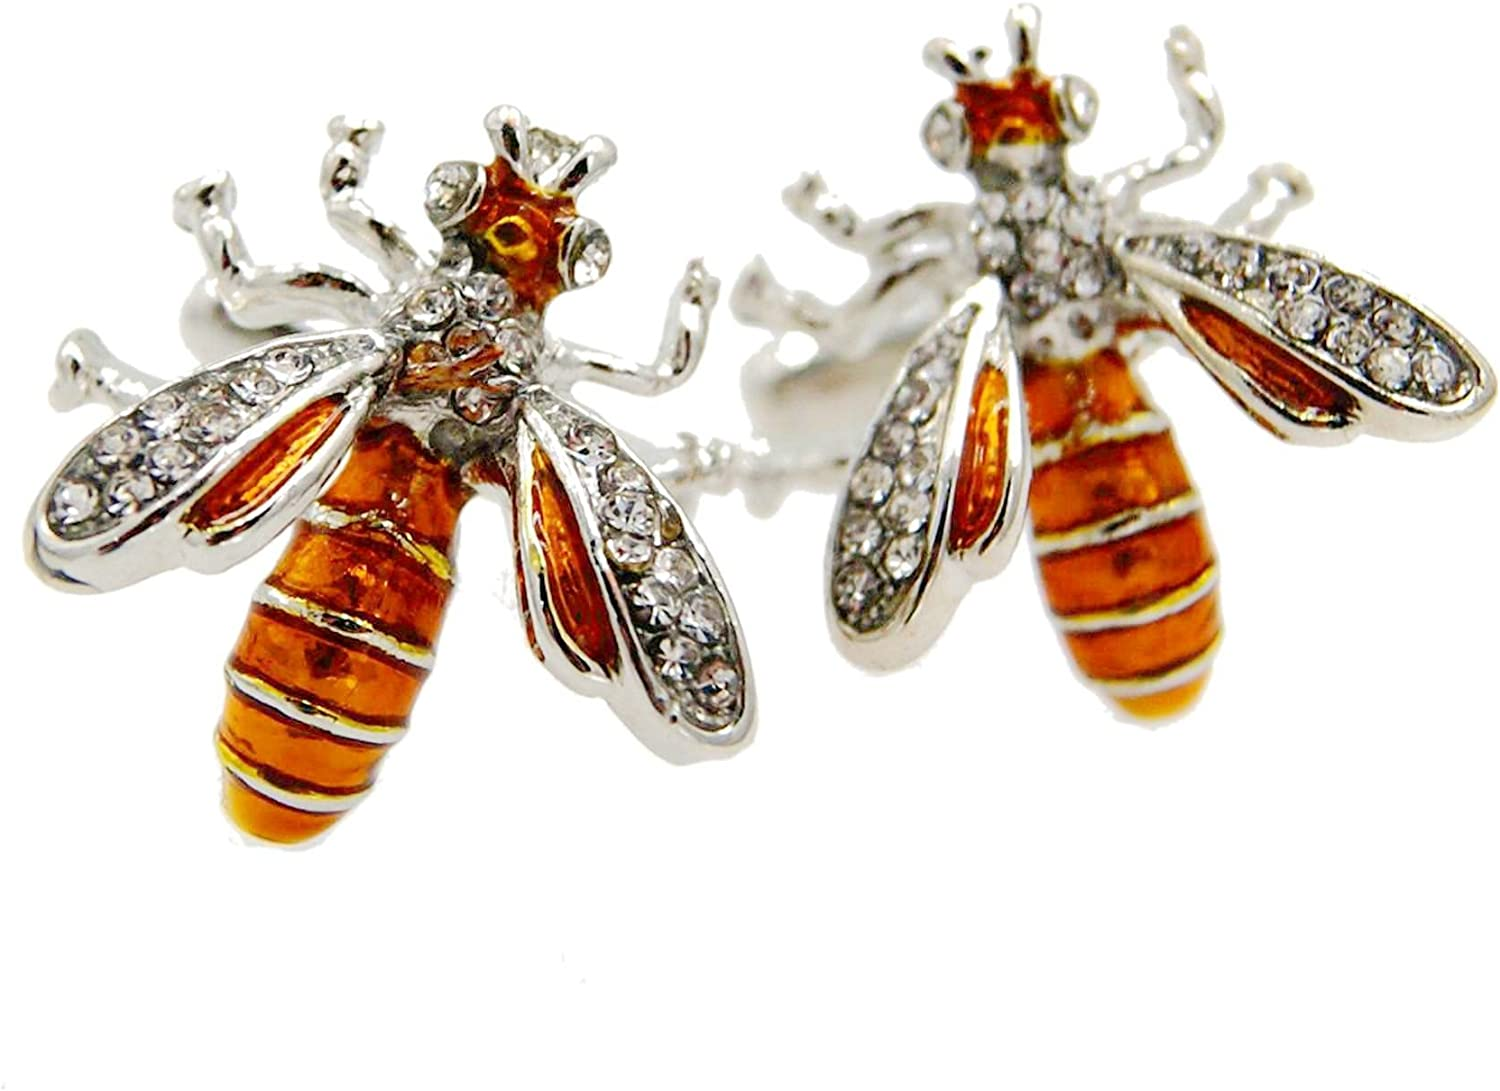 RXBC2011 Bee Cufflinks Gift Boxed